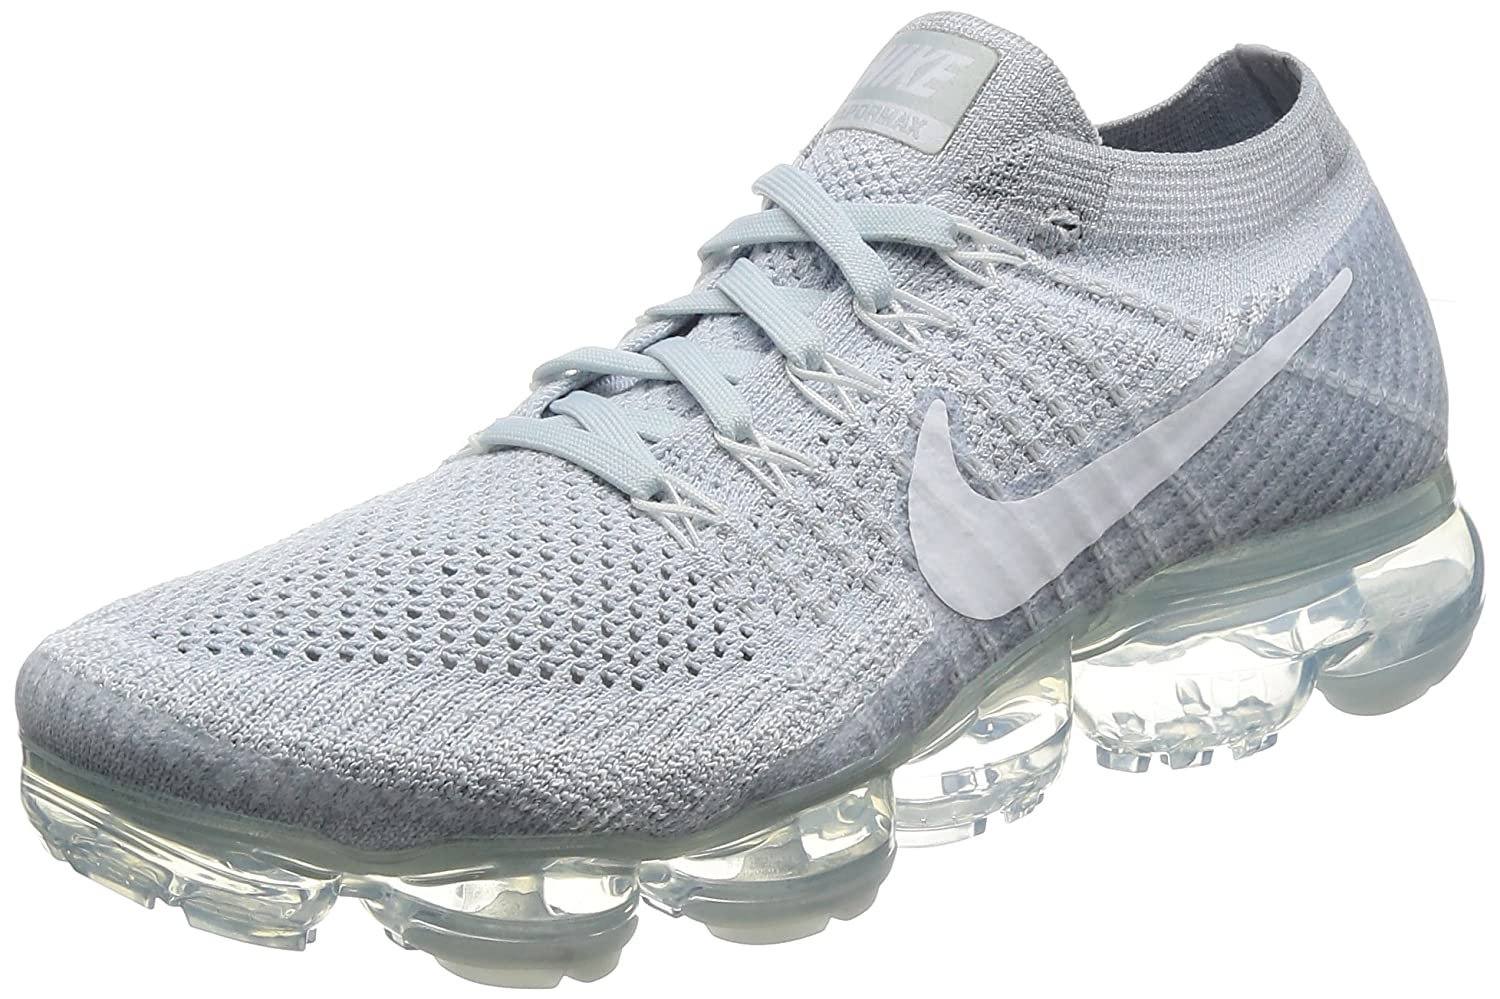 e8179d4c90 Amazon.com | Men's Nike Air Vapormax Flyknit Running Shoe | Fashion Sneakers